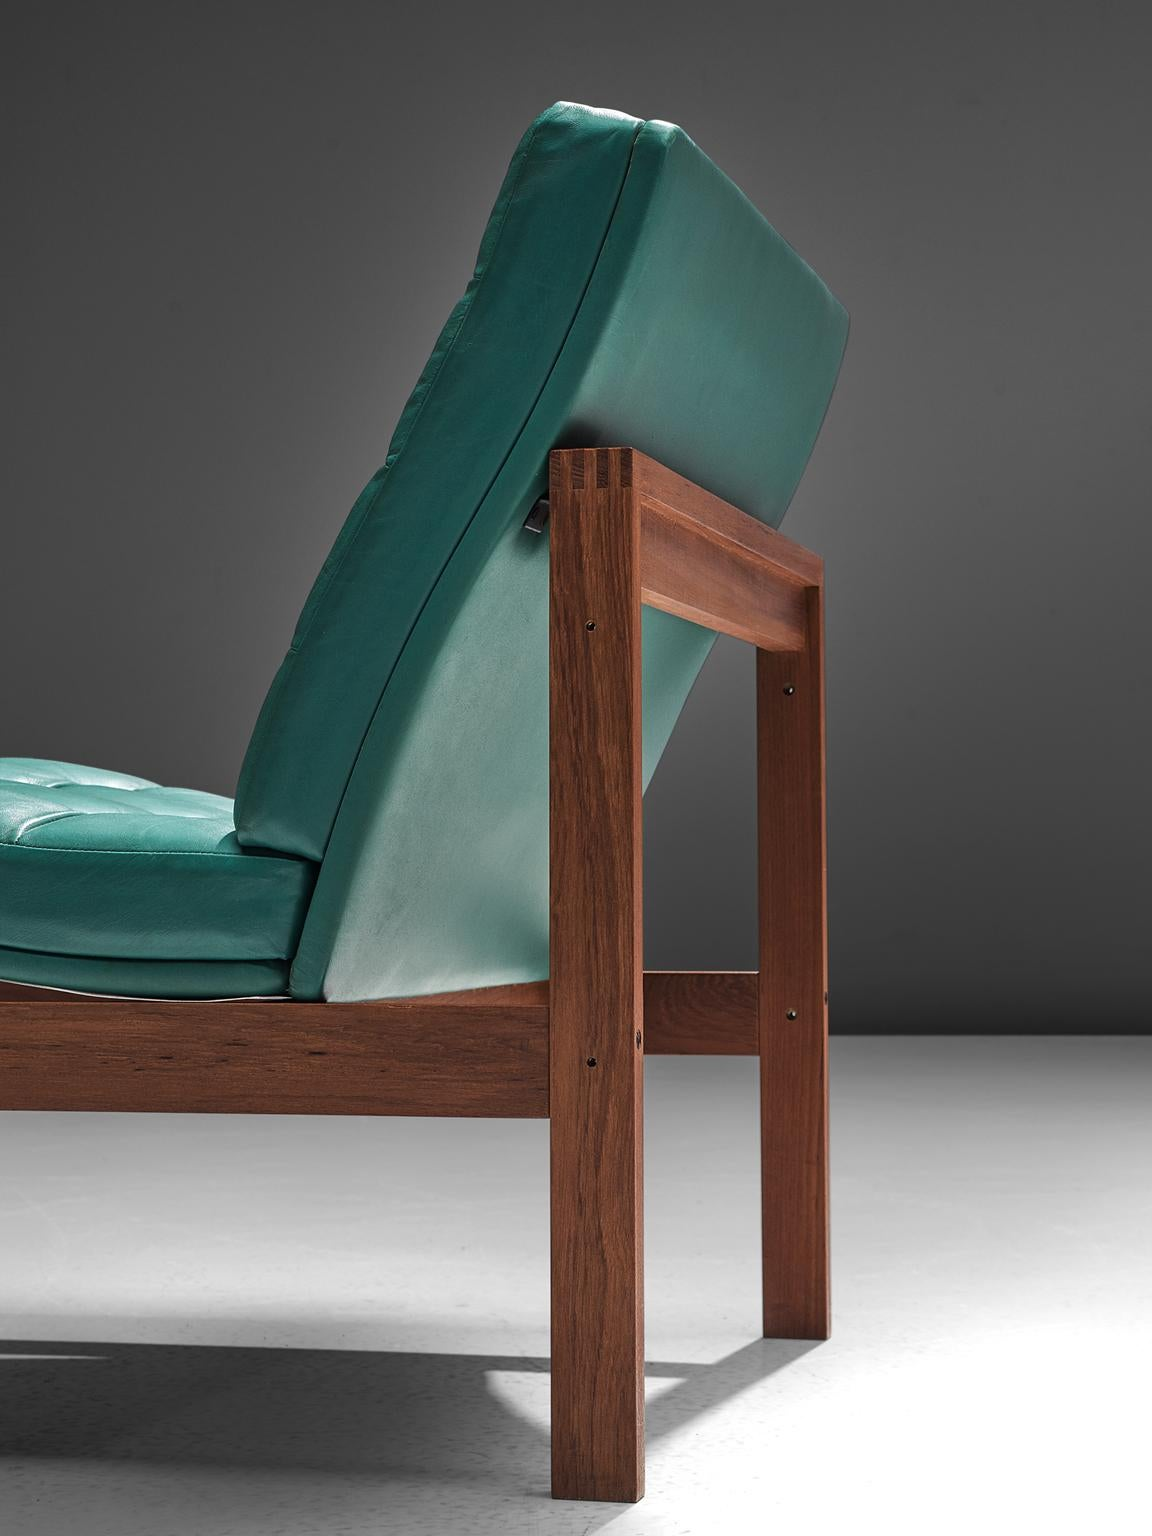 Incroyable Mid 20th Century Knudsen U0026 Lind Moduline Turquoise Leather Lounge Chairs  For Sale